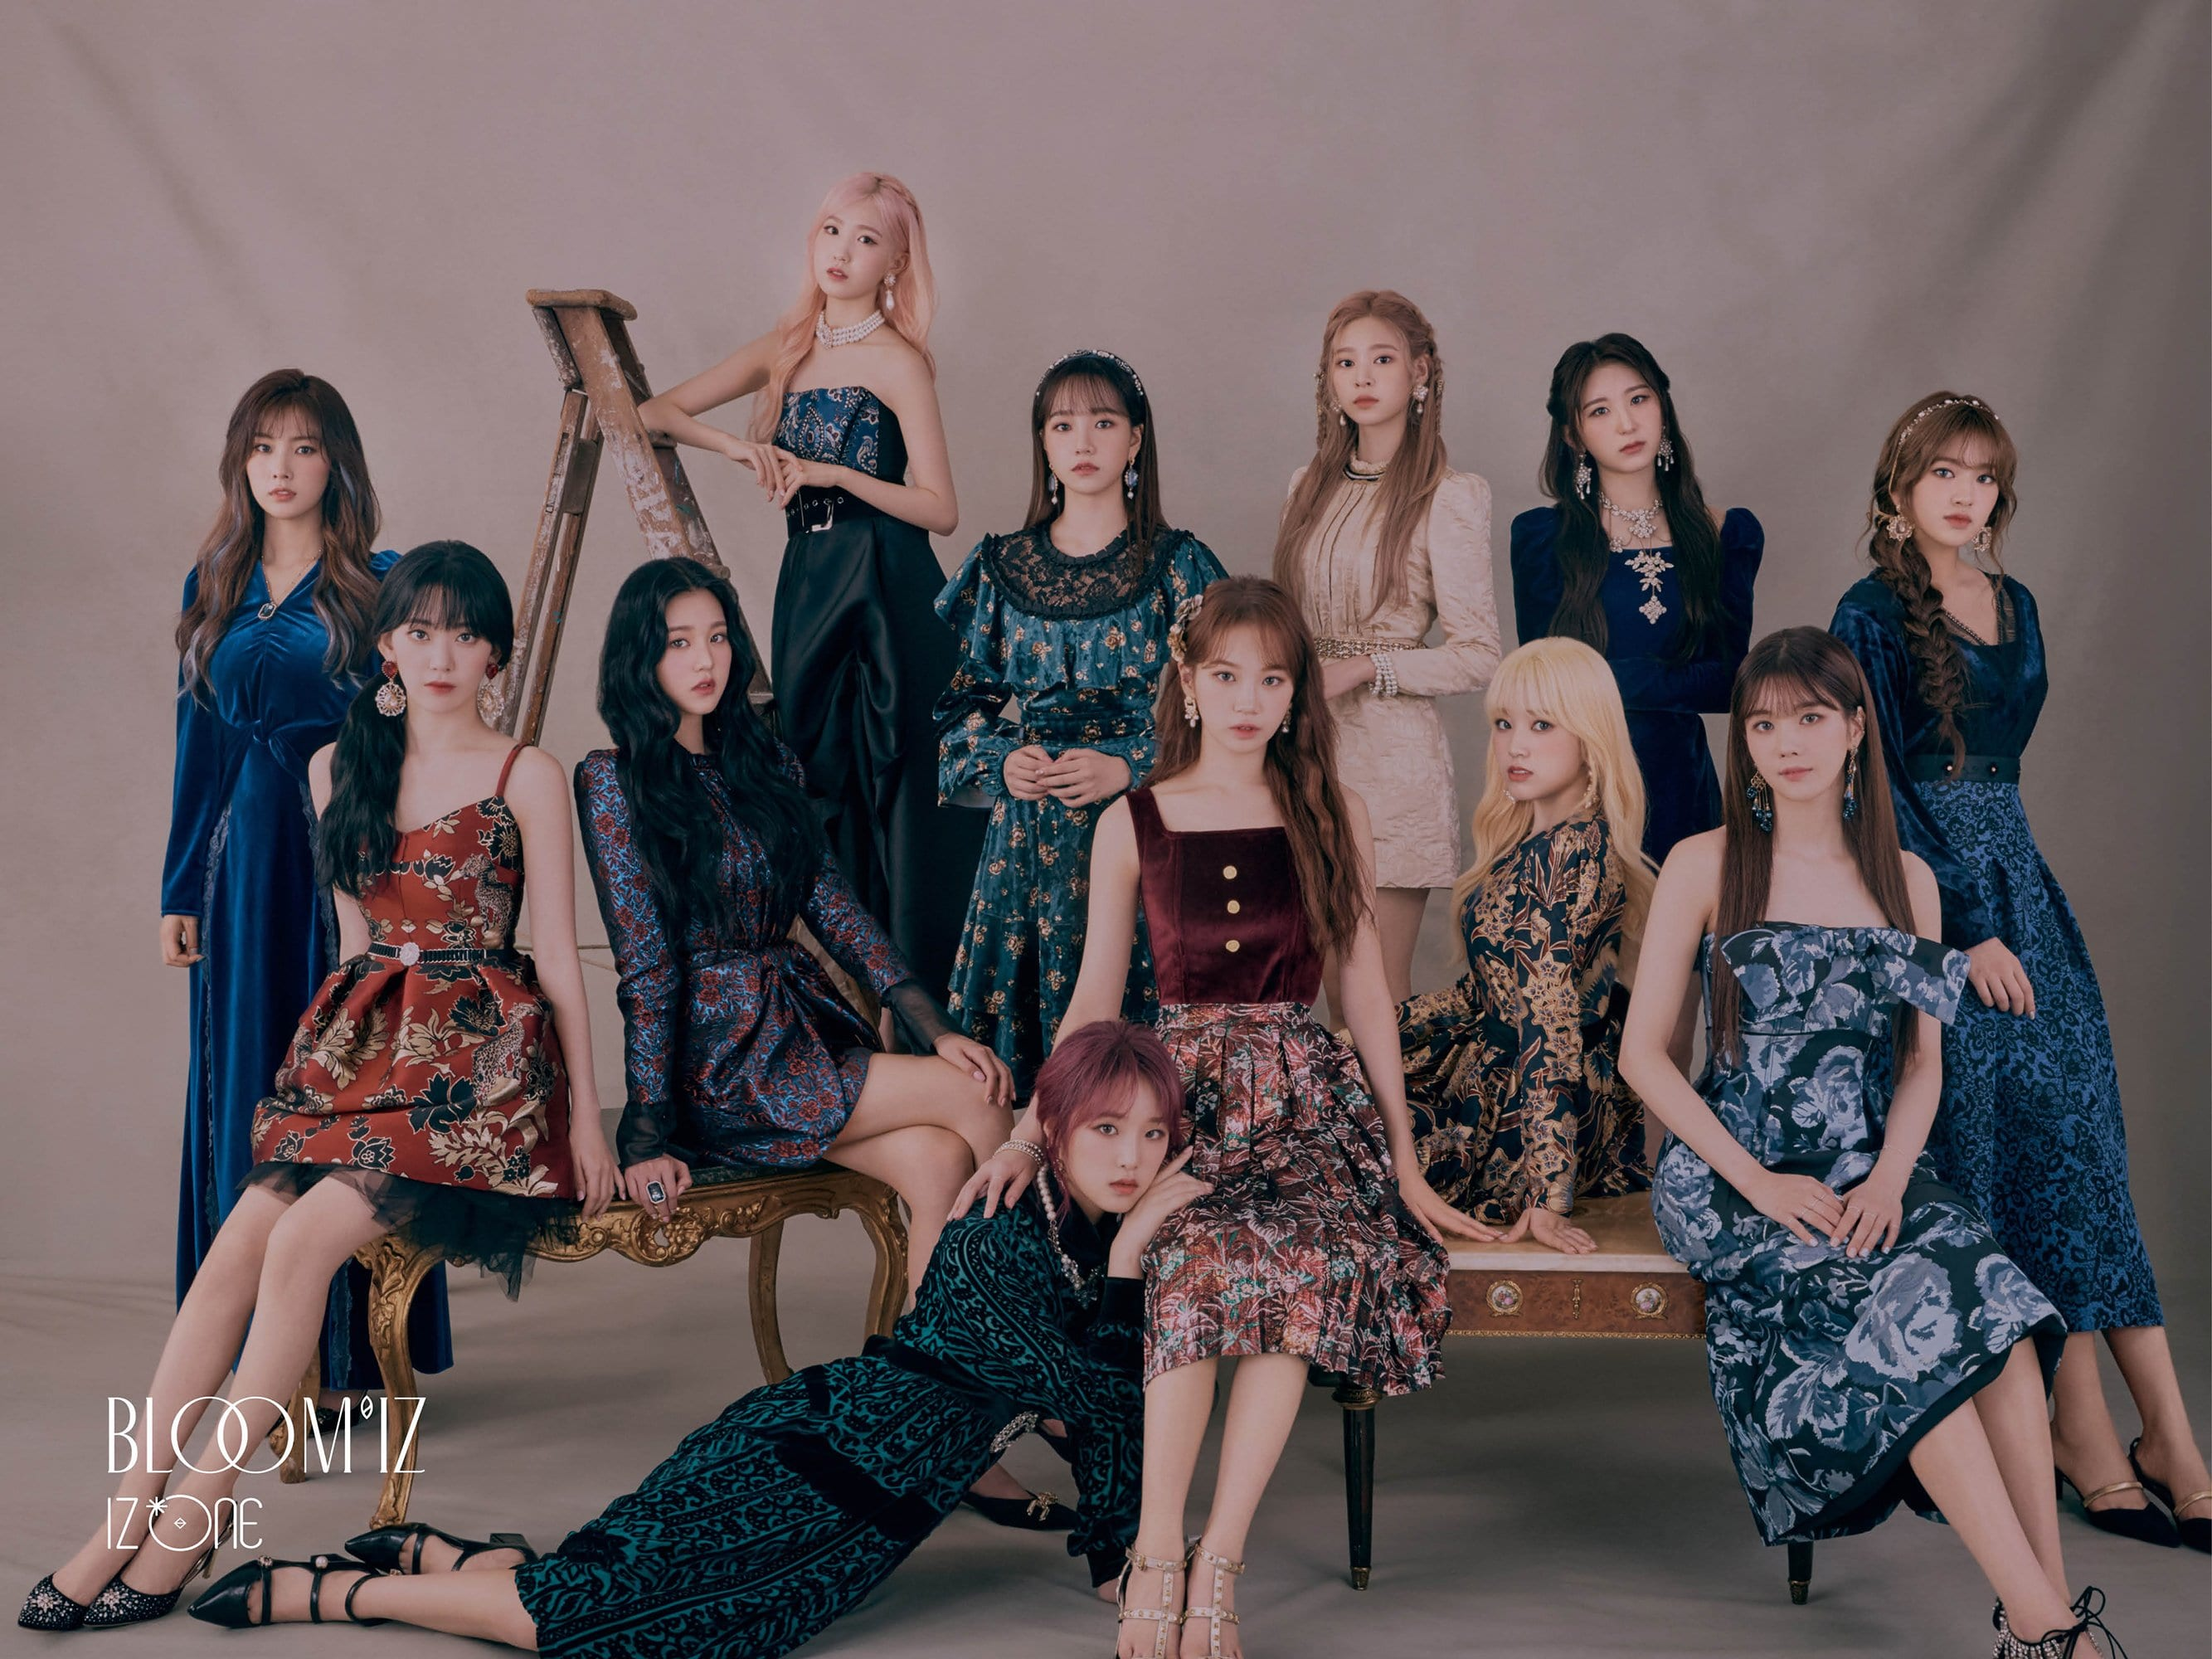 IZ*ONE Resmi Tunda Perilisan Album 'BLOOM*IZ'